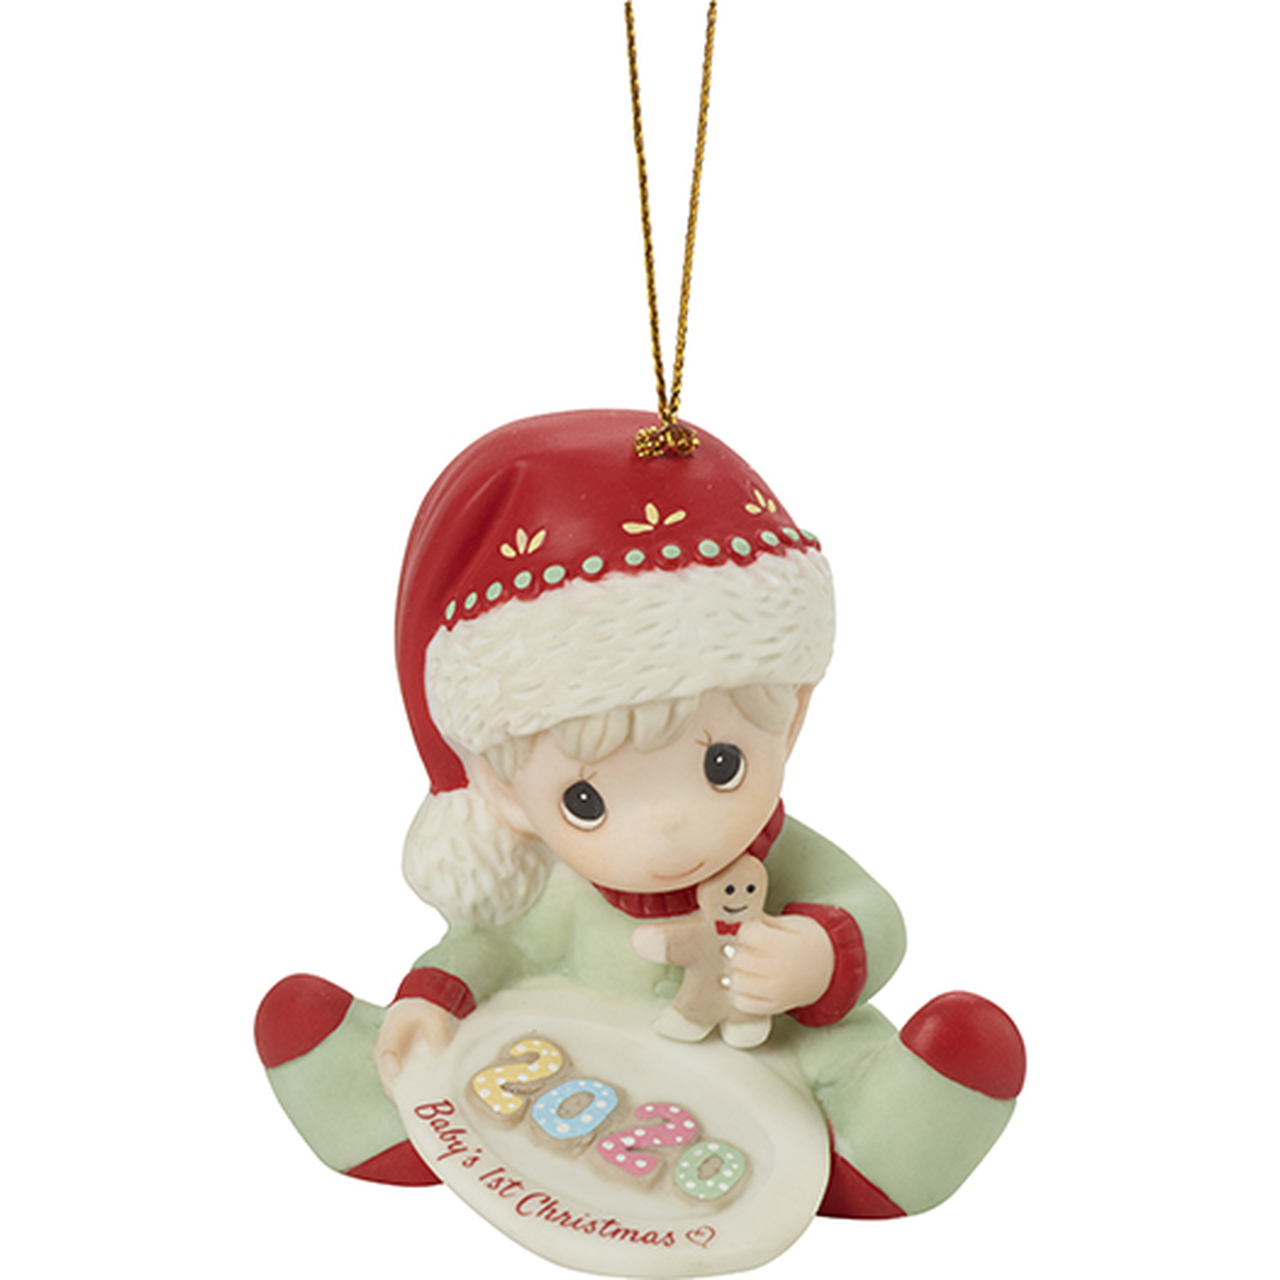 Precious Moments Babys 1st Christmas 2020 2020 Baby's First Christmas, Boy   Dated Precious Moments